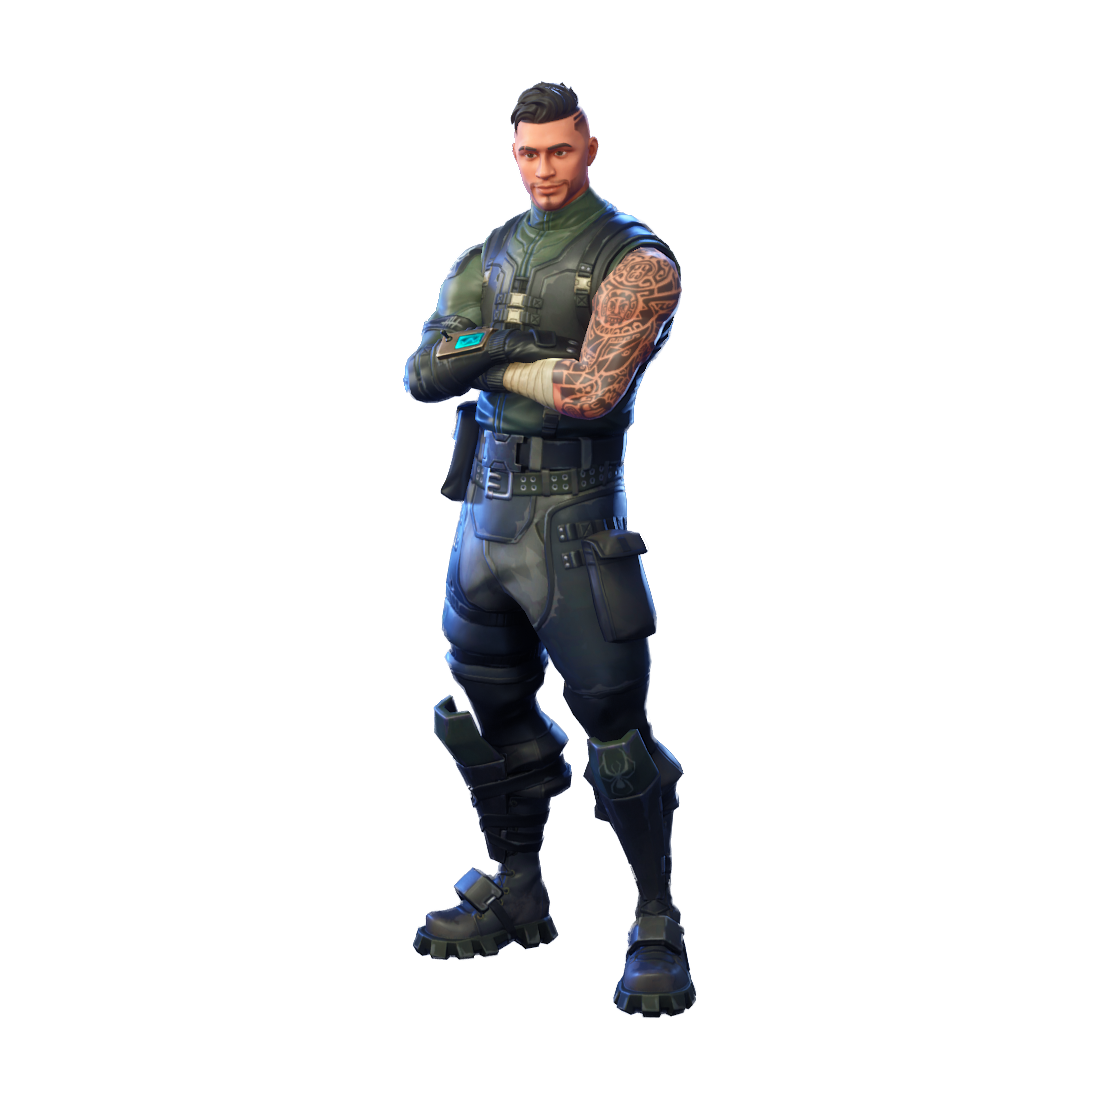 Fortnite clipart transparent. Squad leader png image